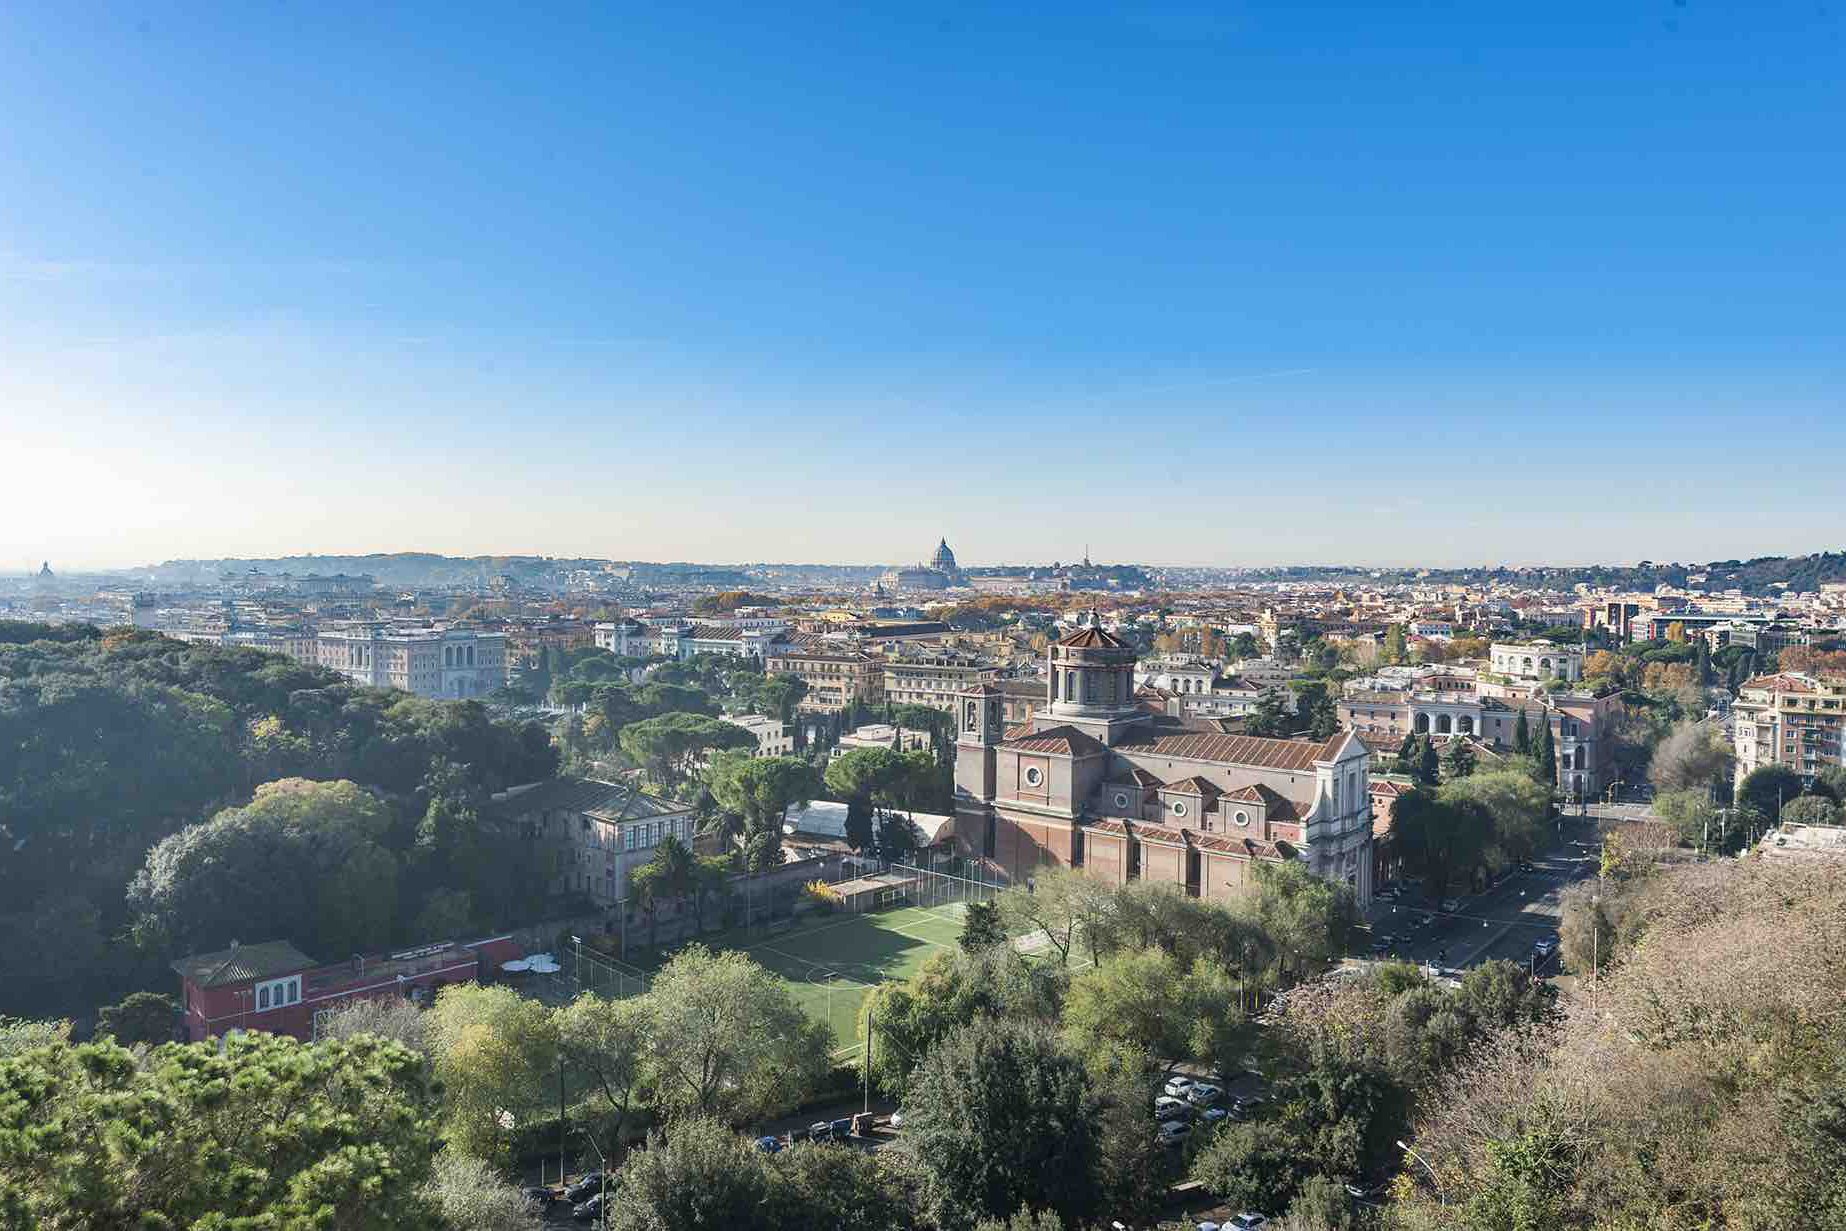 An aerial view of a historical villa, prime real estate in Rome, Italy